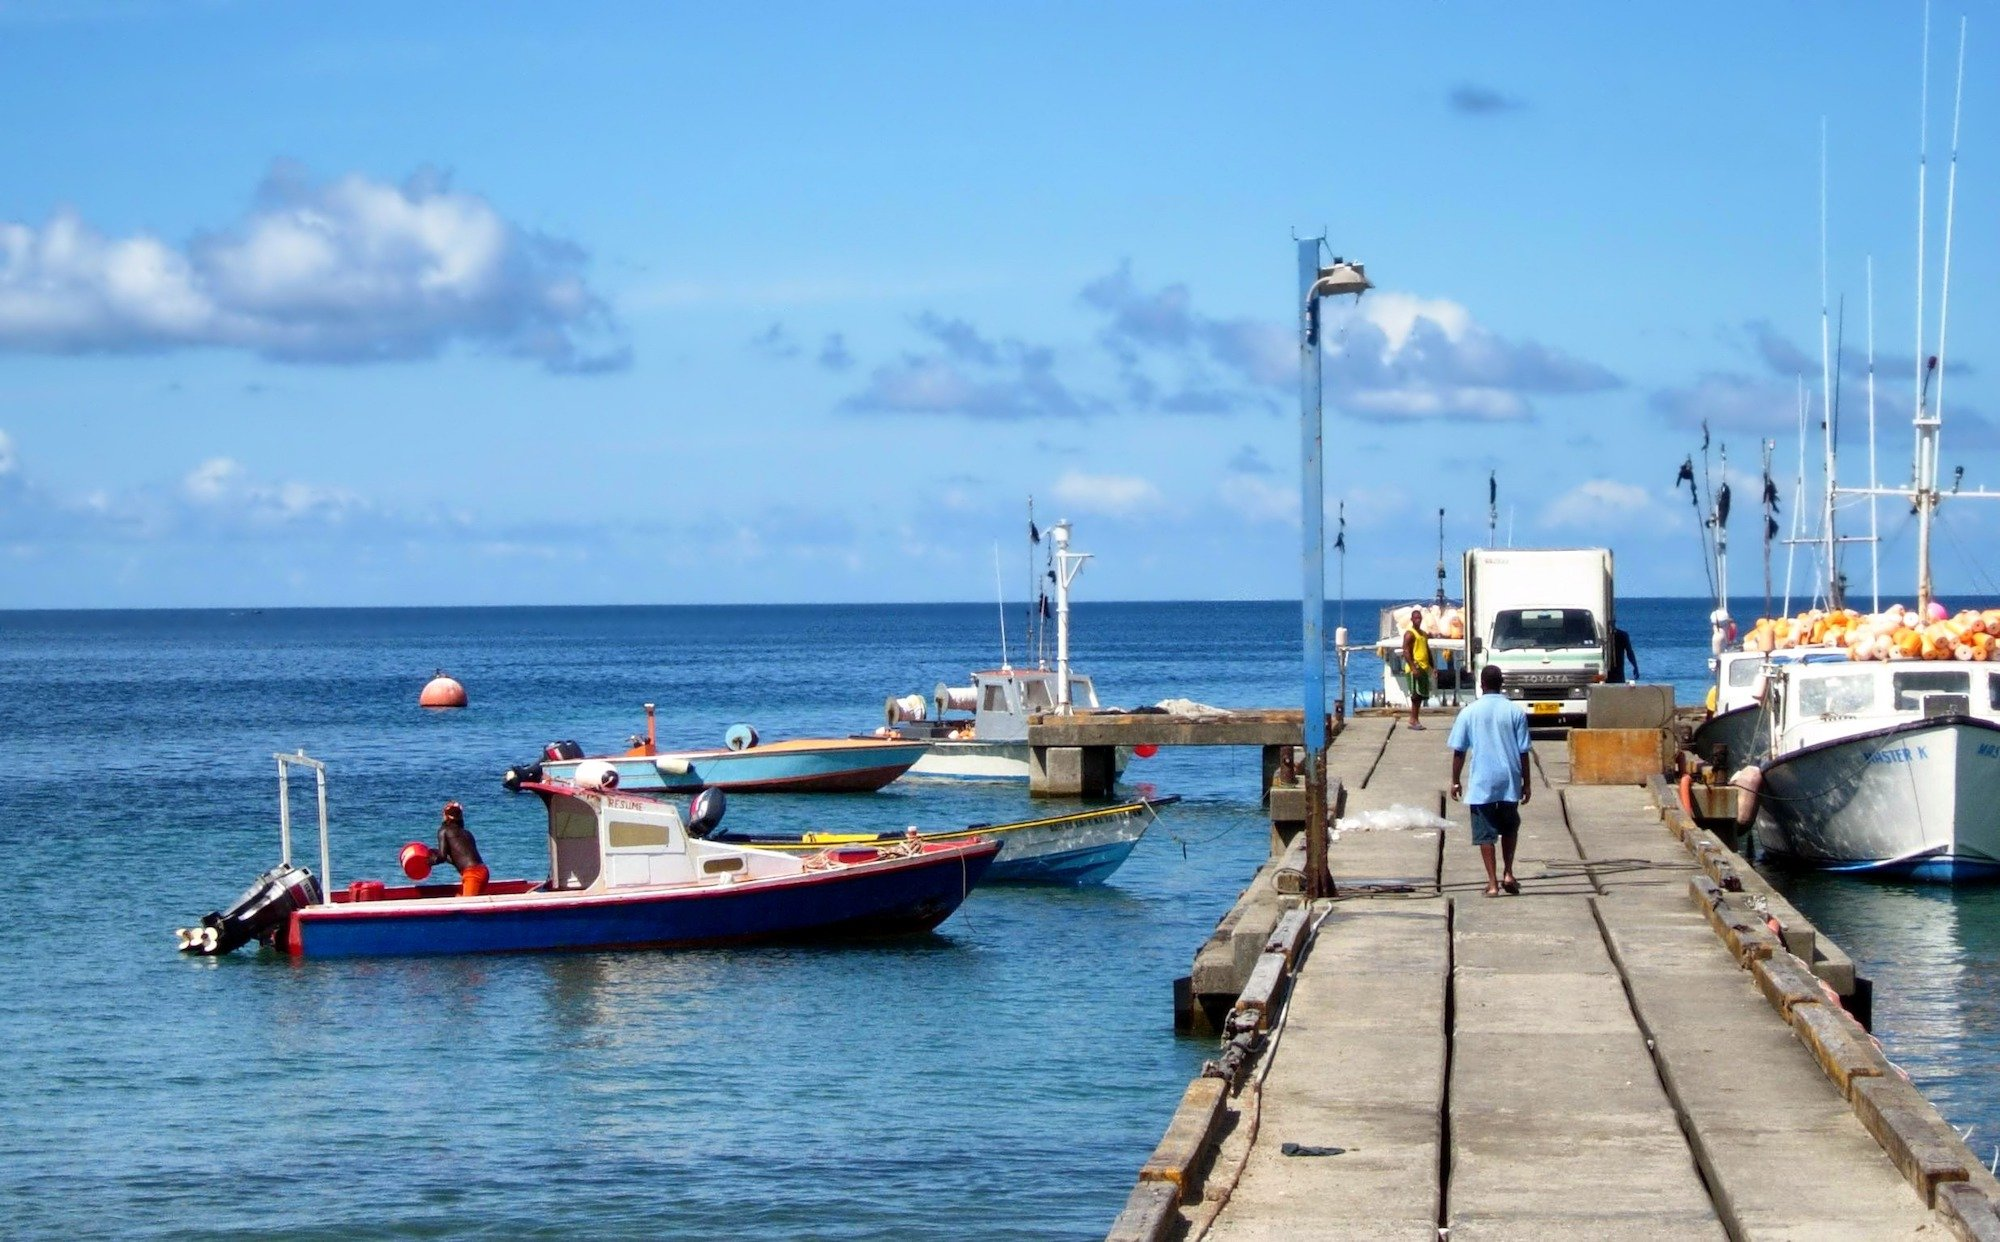 Grenana Jetty